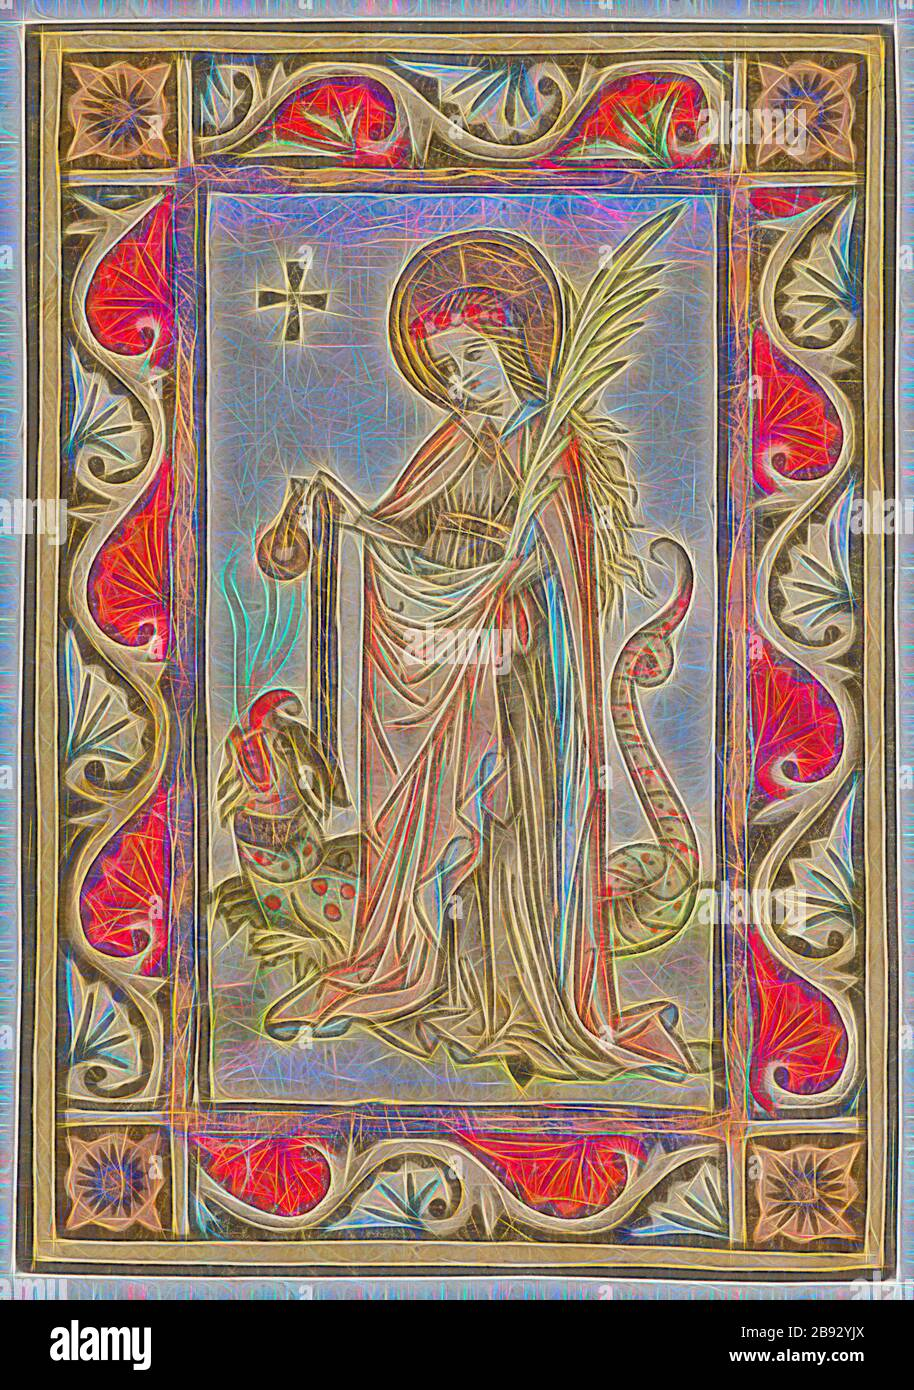 St. Margaret of Antioch, around 1440/50, woodcut, colored (unique), unique, 18.5 x 13.1 cm, Anonym, Oberrhein, 15. Jh., Reimagined by Gibon, design of warm cheerful glowing of brightness and light rays radiance. Classic art reinvented with a modern twist. Photography inspired by futurism, embracing dynamic energy of modern technology, movement, speed and revolutionize culture. Stock Photo